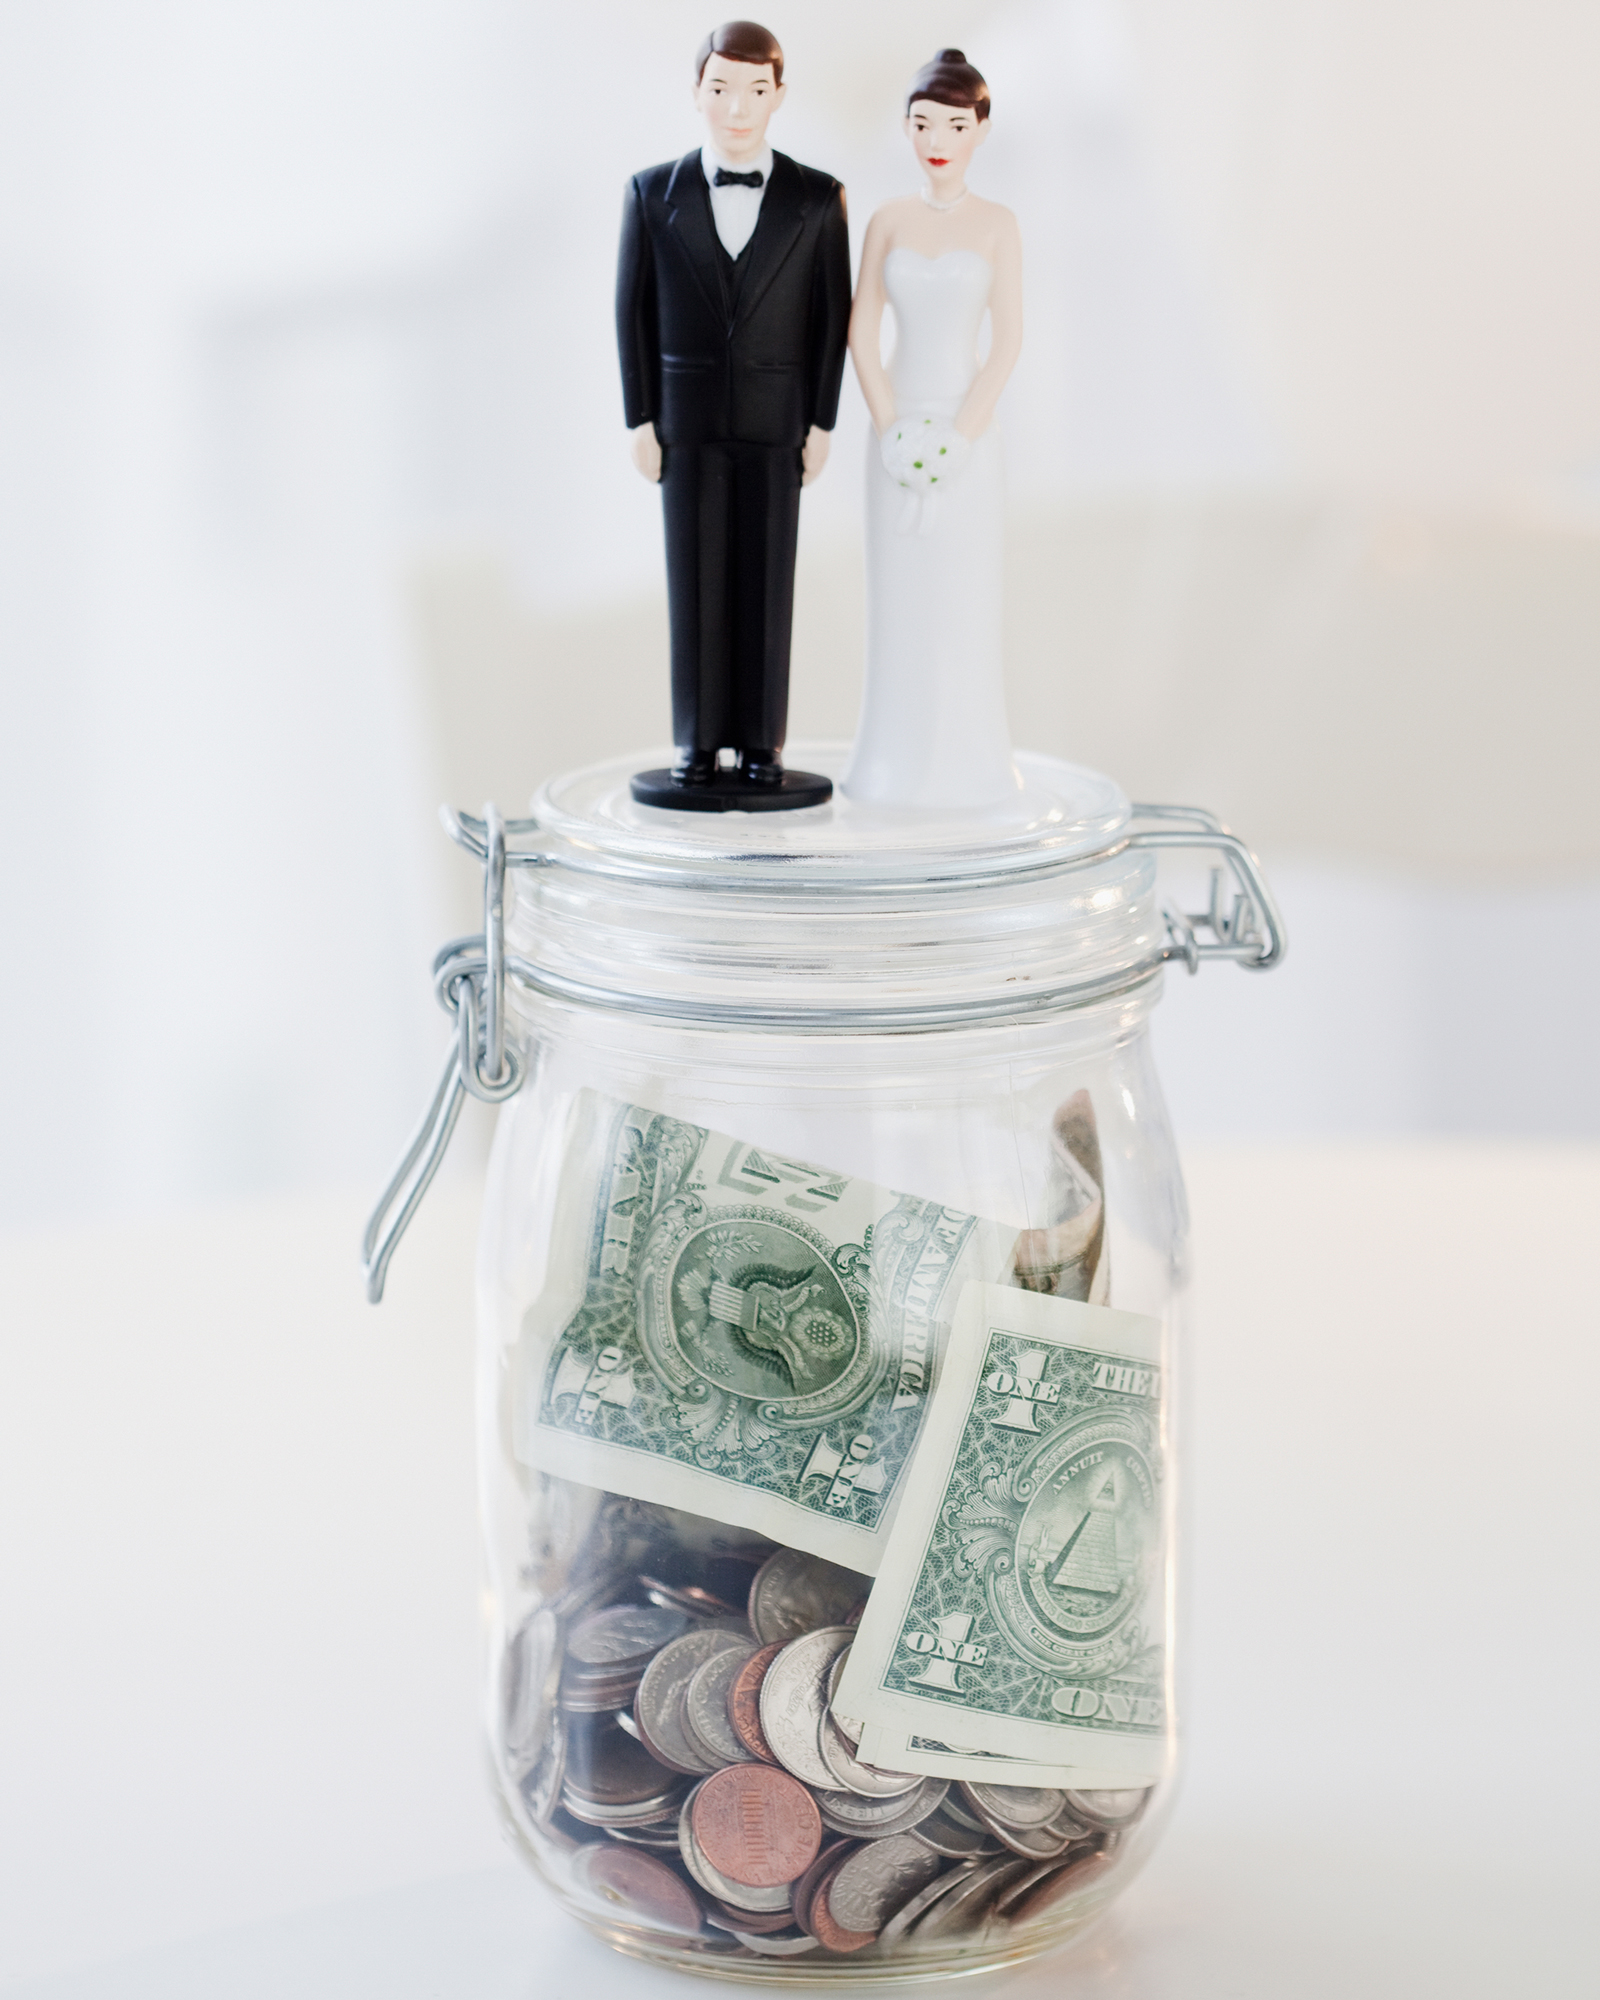 bride and groom figurines on money jar